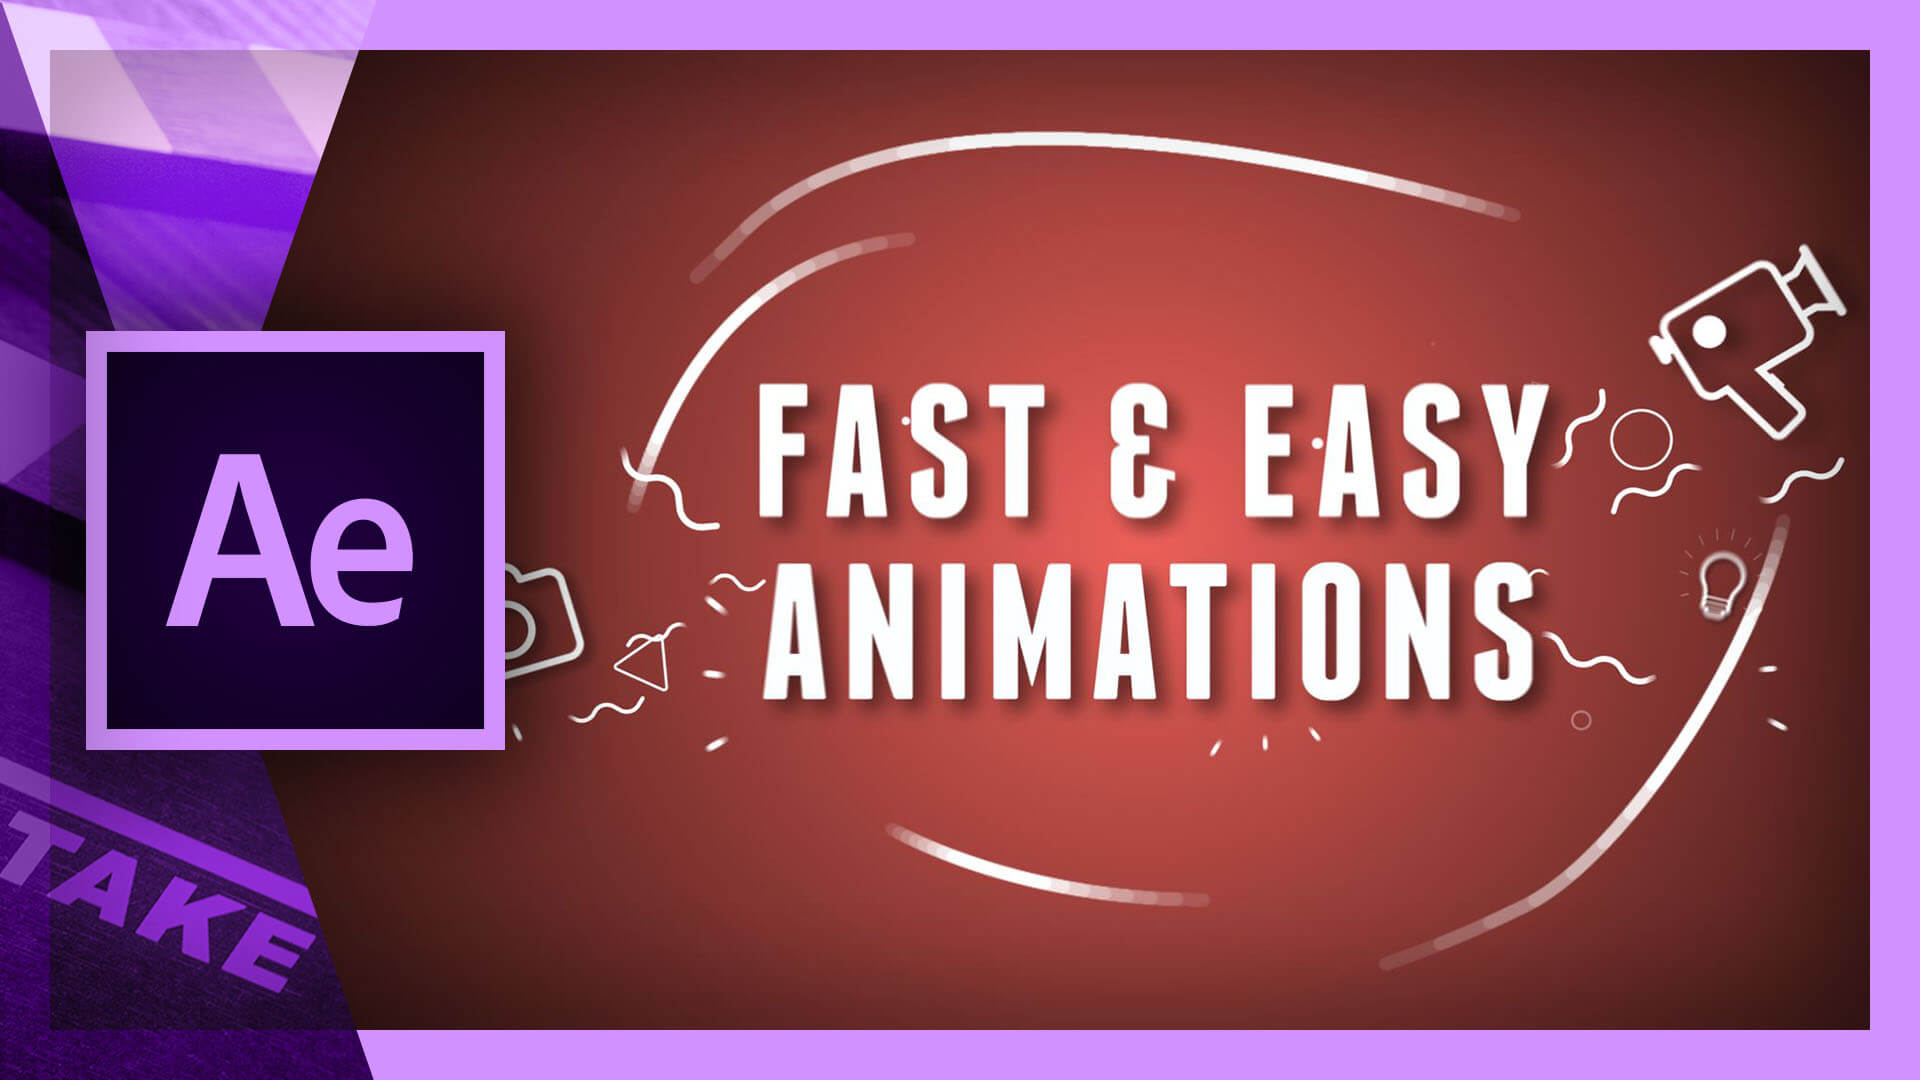 SUPER EASY ANIMATIONS - 5 After Effects Expressions | Cinecom net